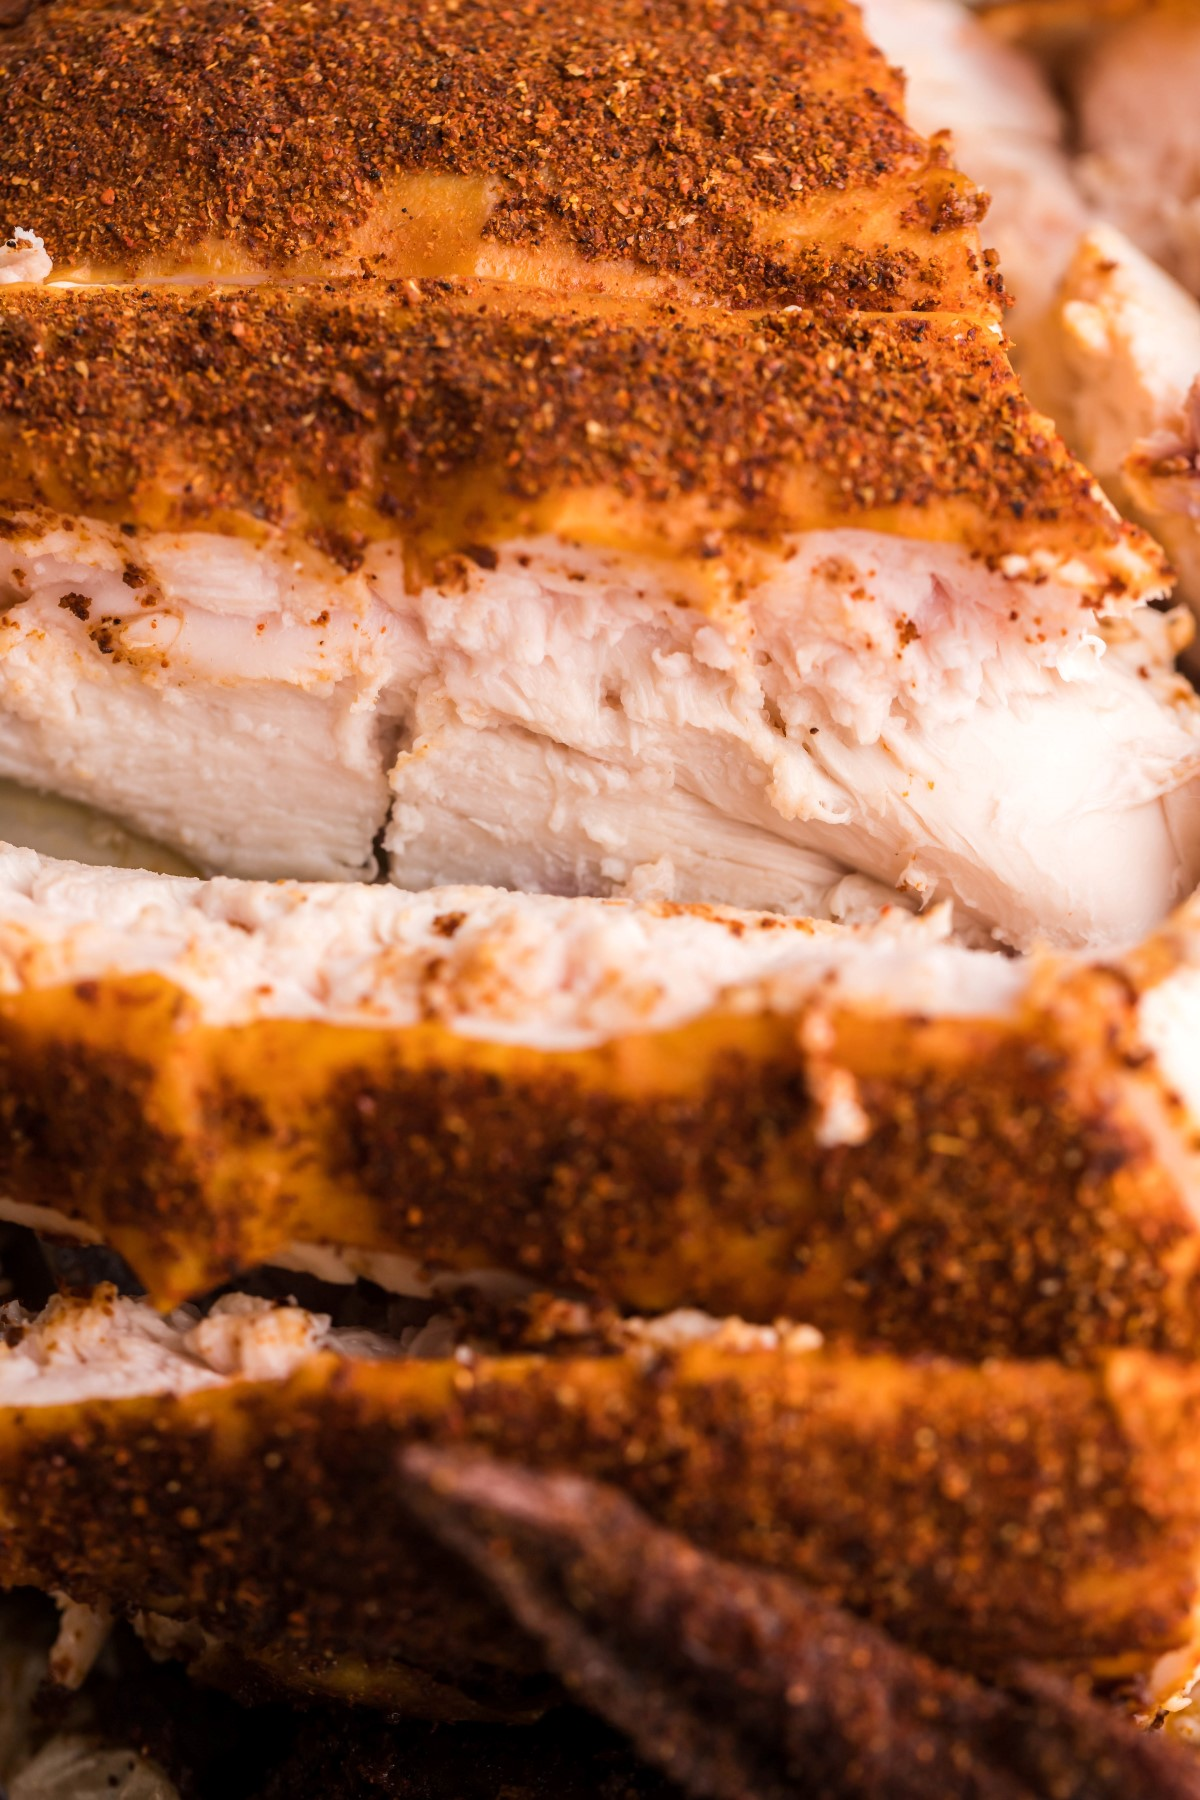 Close up of picture of smoked chicken breast slices with dry rub on the skin.